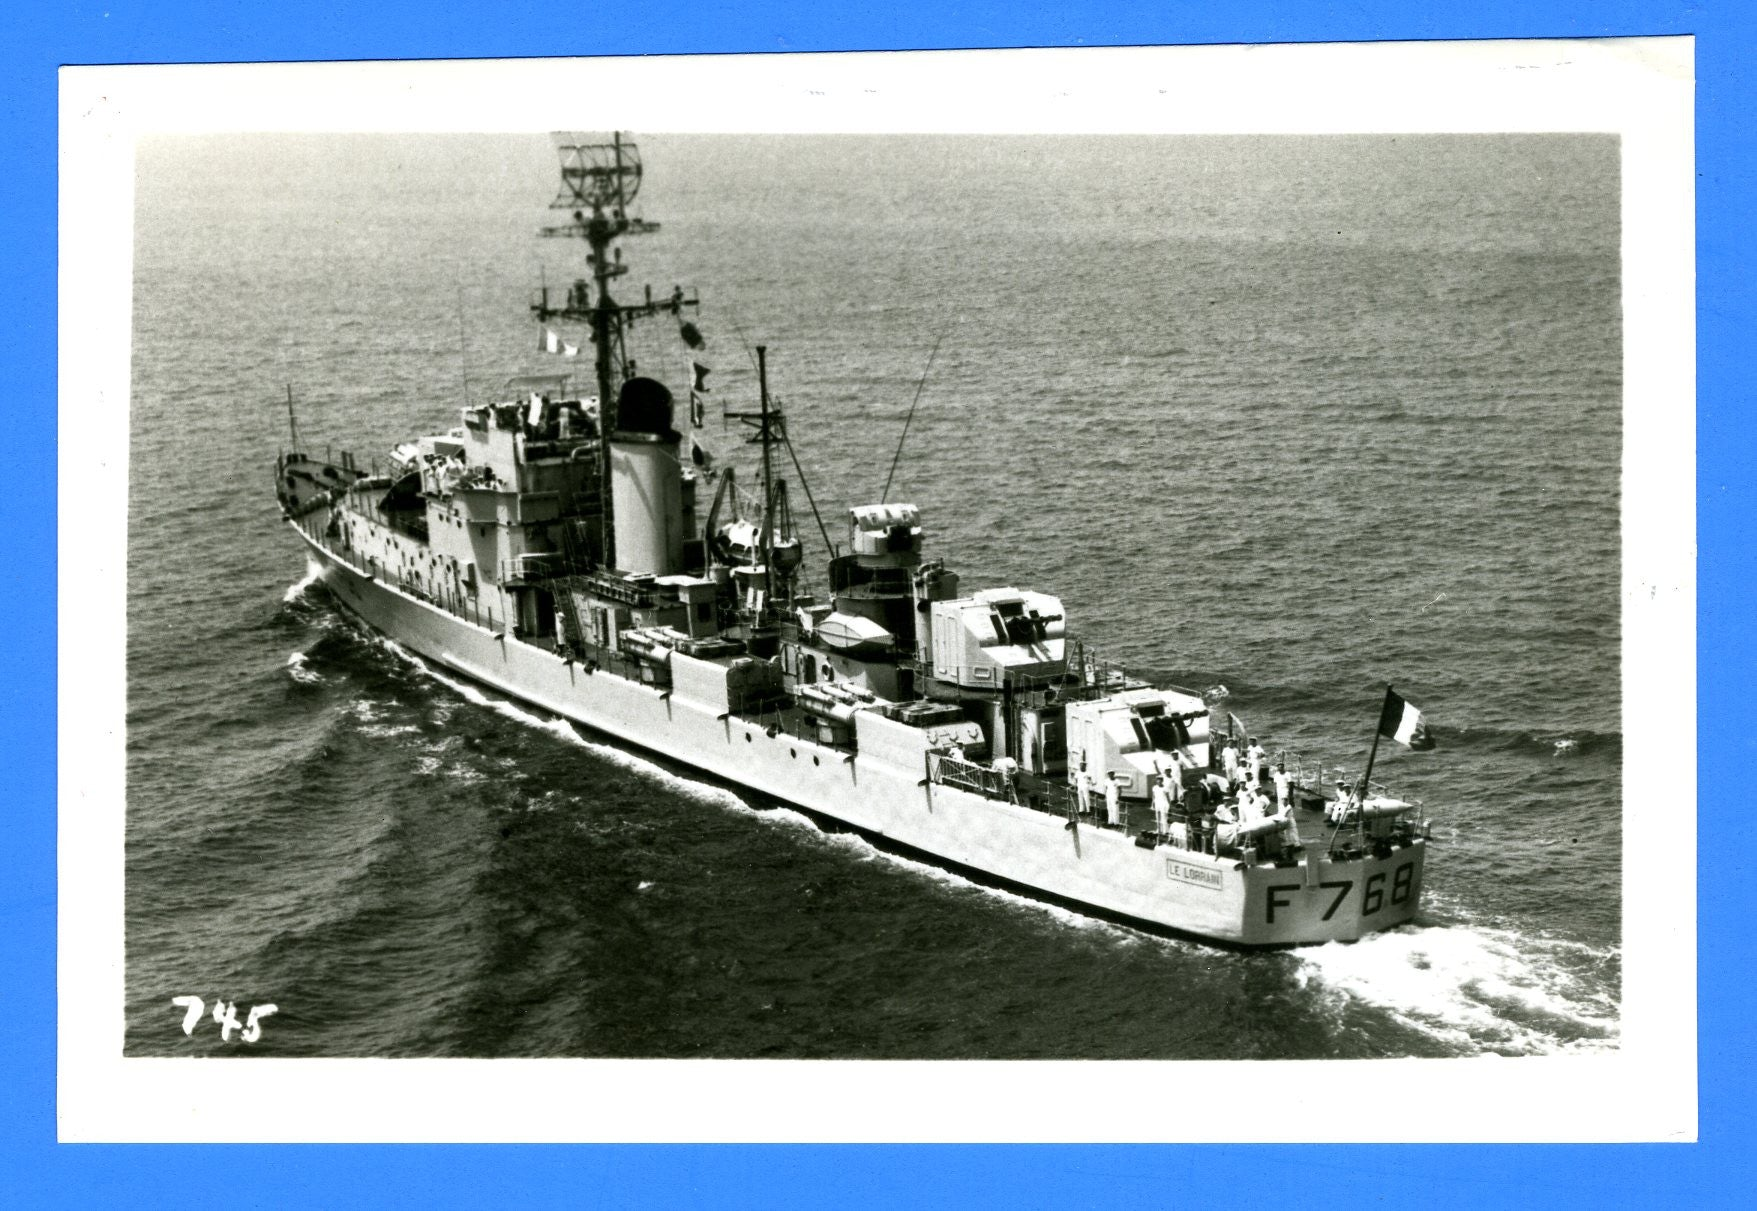 "French Navy Frigate Le Lorrain F768 [1957] - 3 1/2 x 5 1/2"" Photograph"